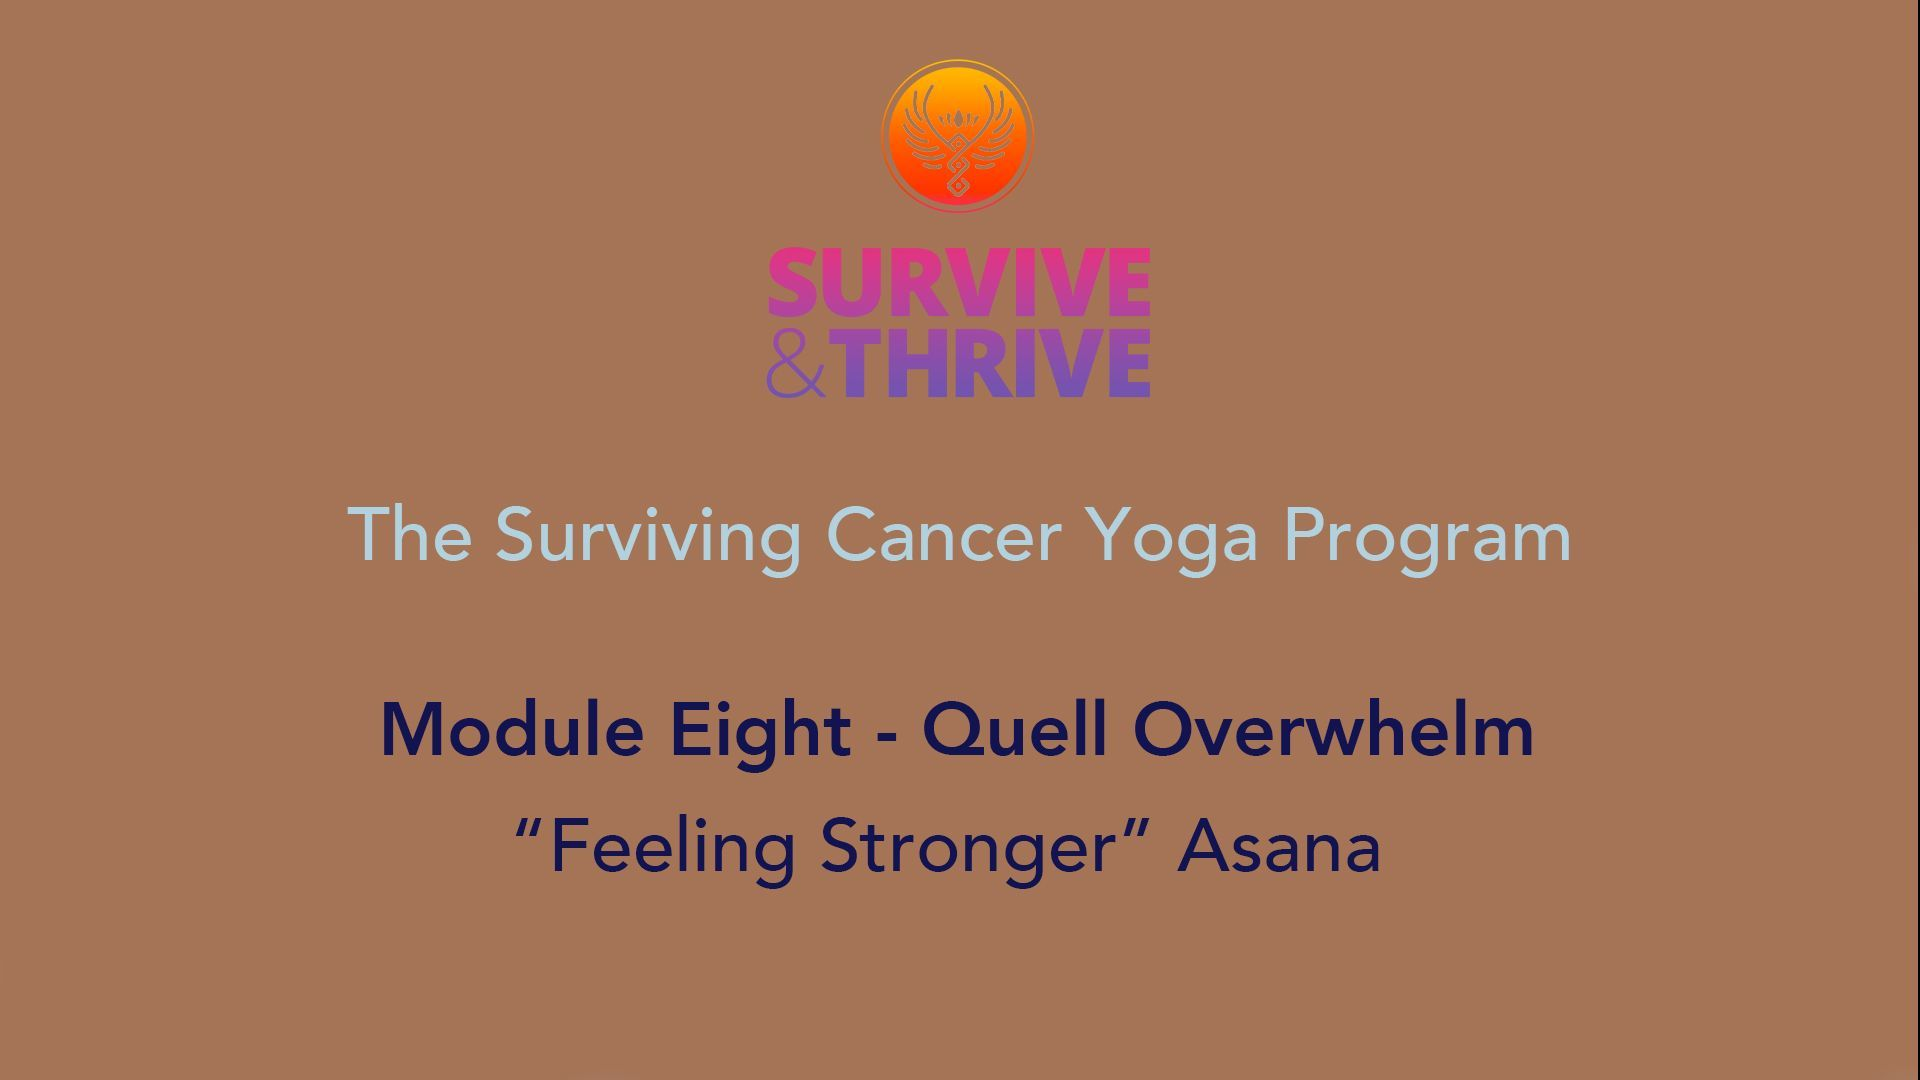 SURVIVE AND THRIVE | MODULE 8 - QUELL OVERWHELM | FEELING STRONGER ASANA